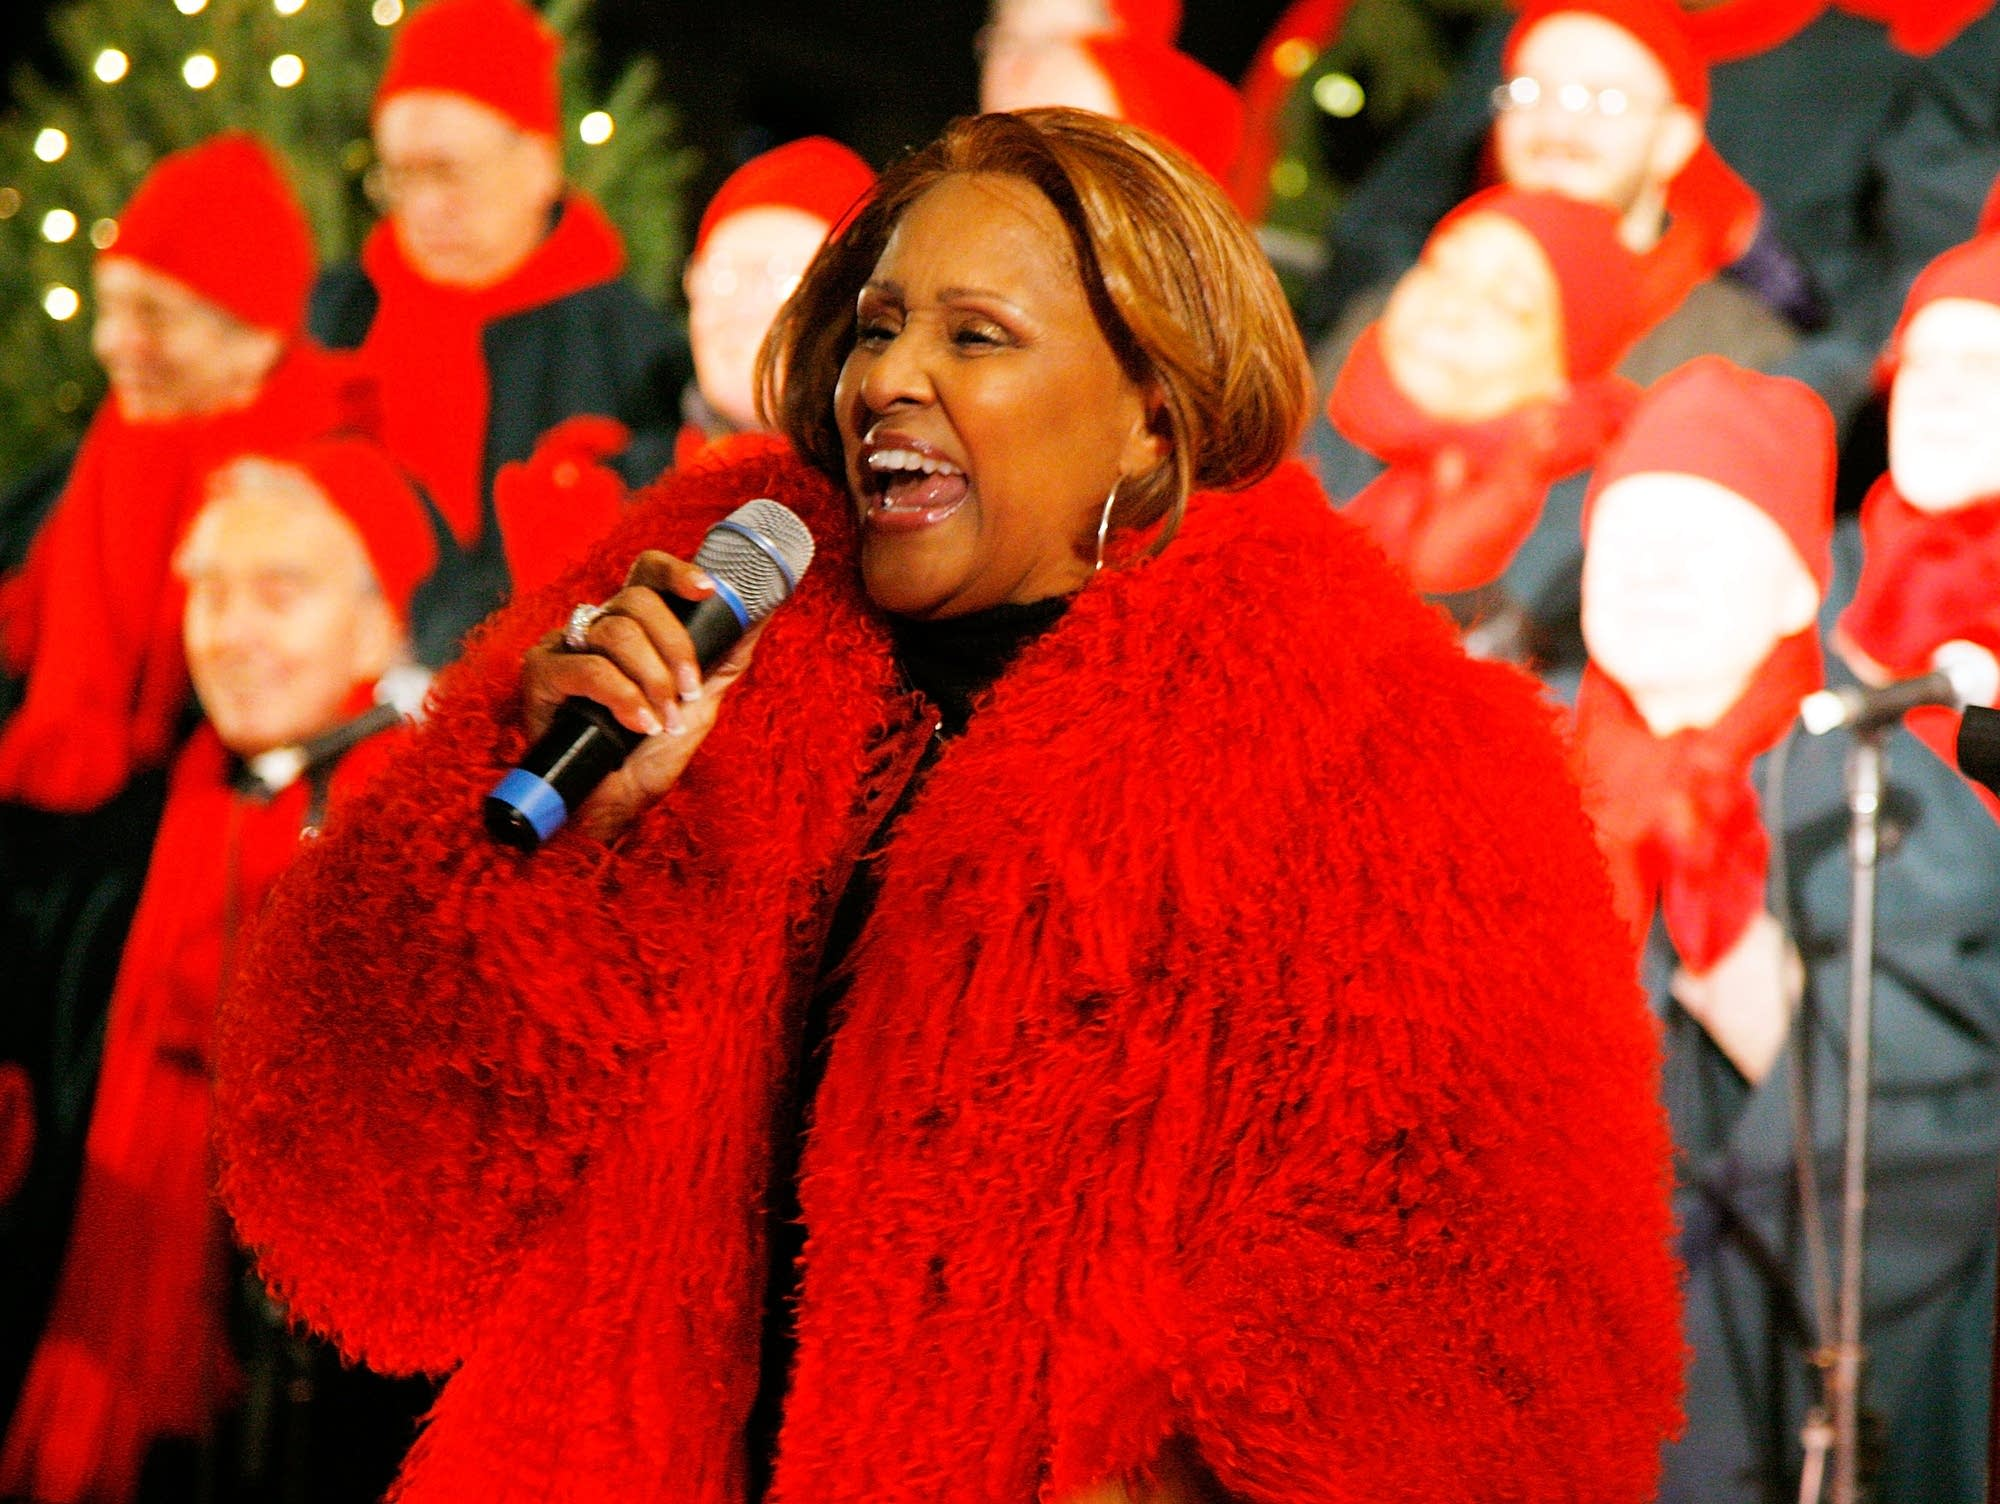 Darlene Love performs at a Christmas tree lighting in New York City, 2010.